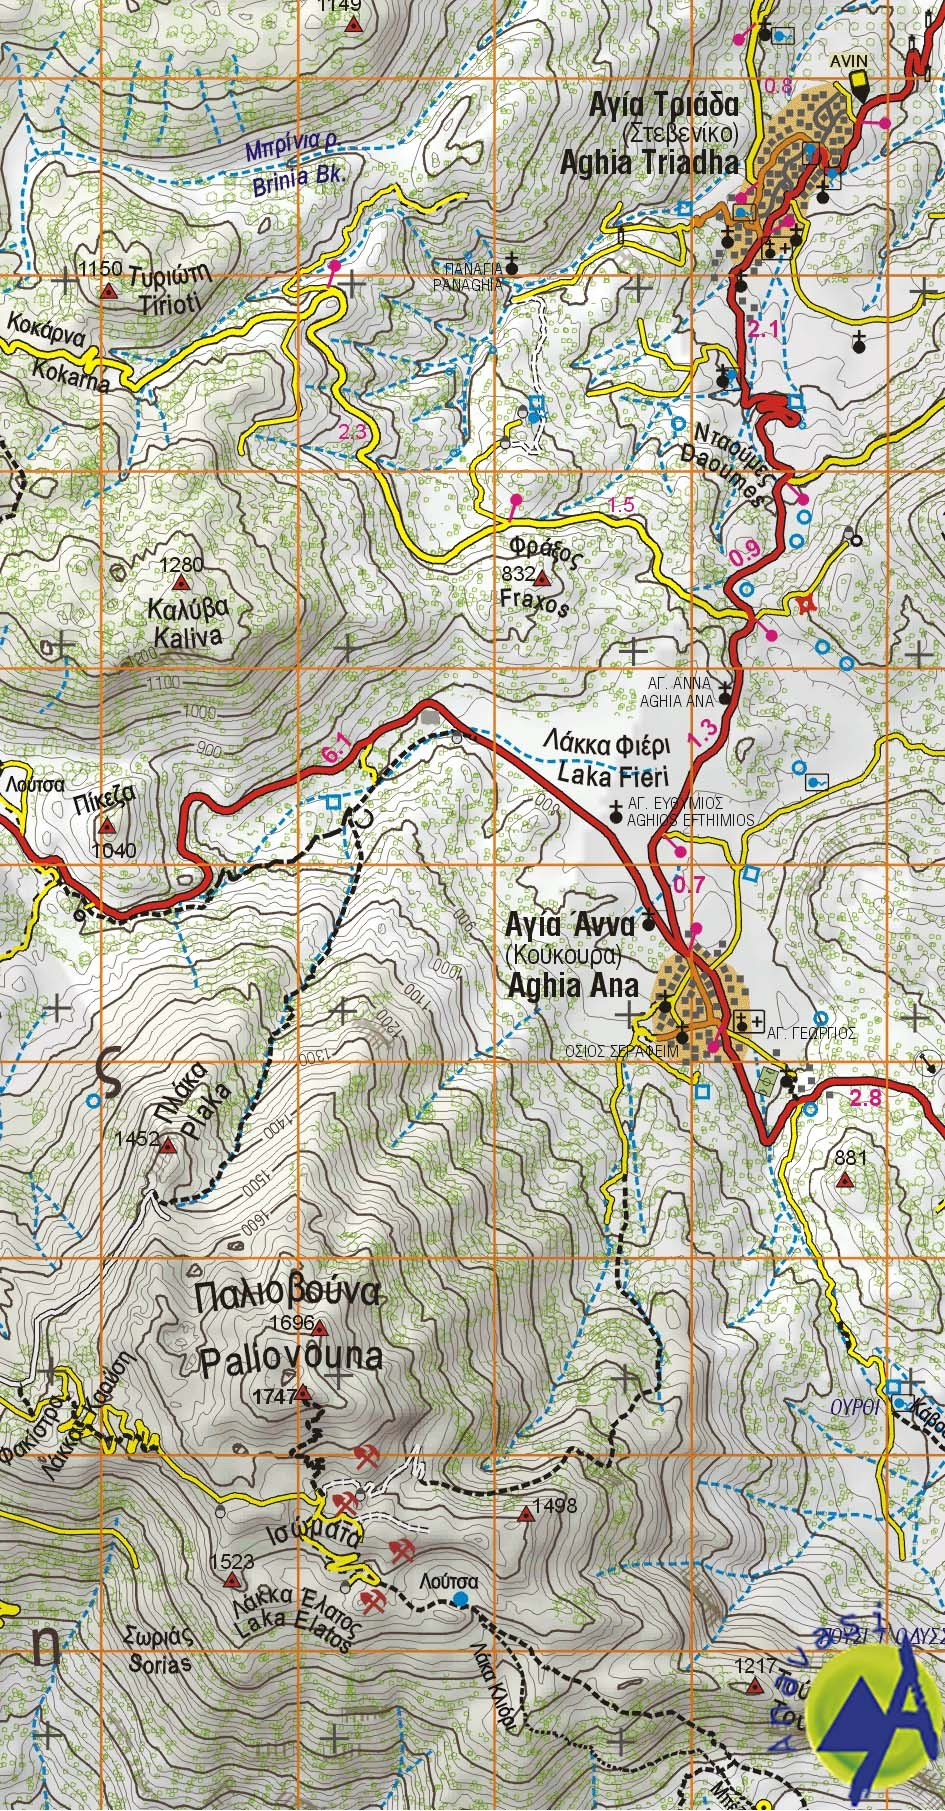 Elikon • Hiking map 1:50.000